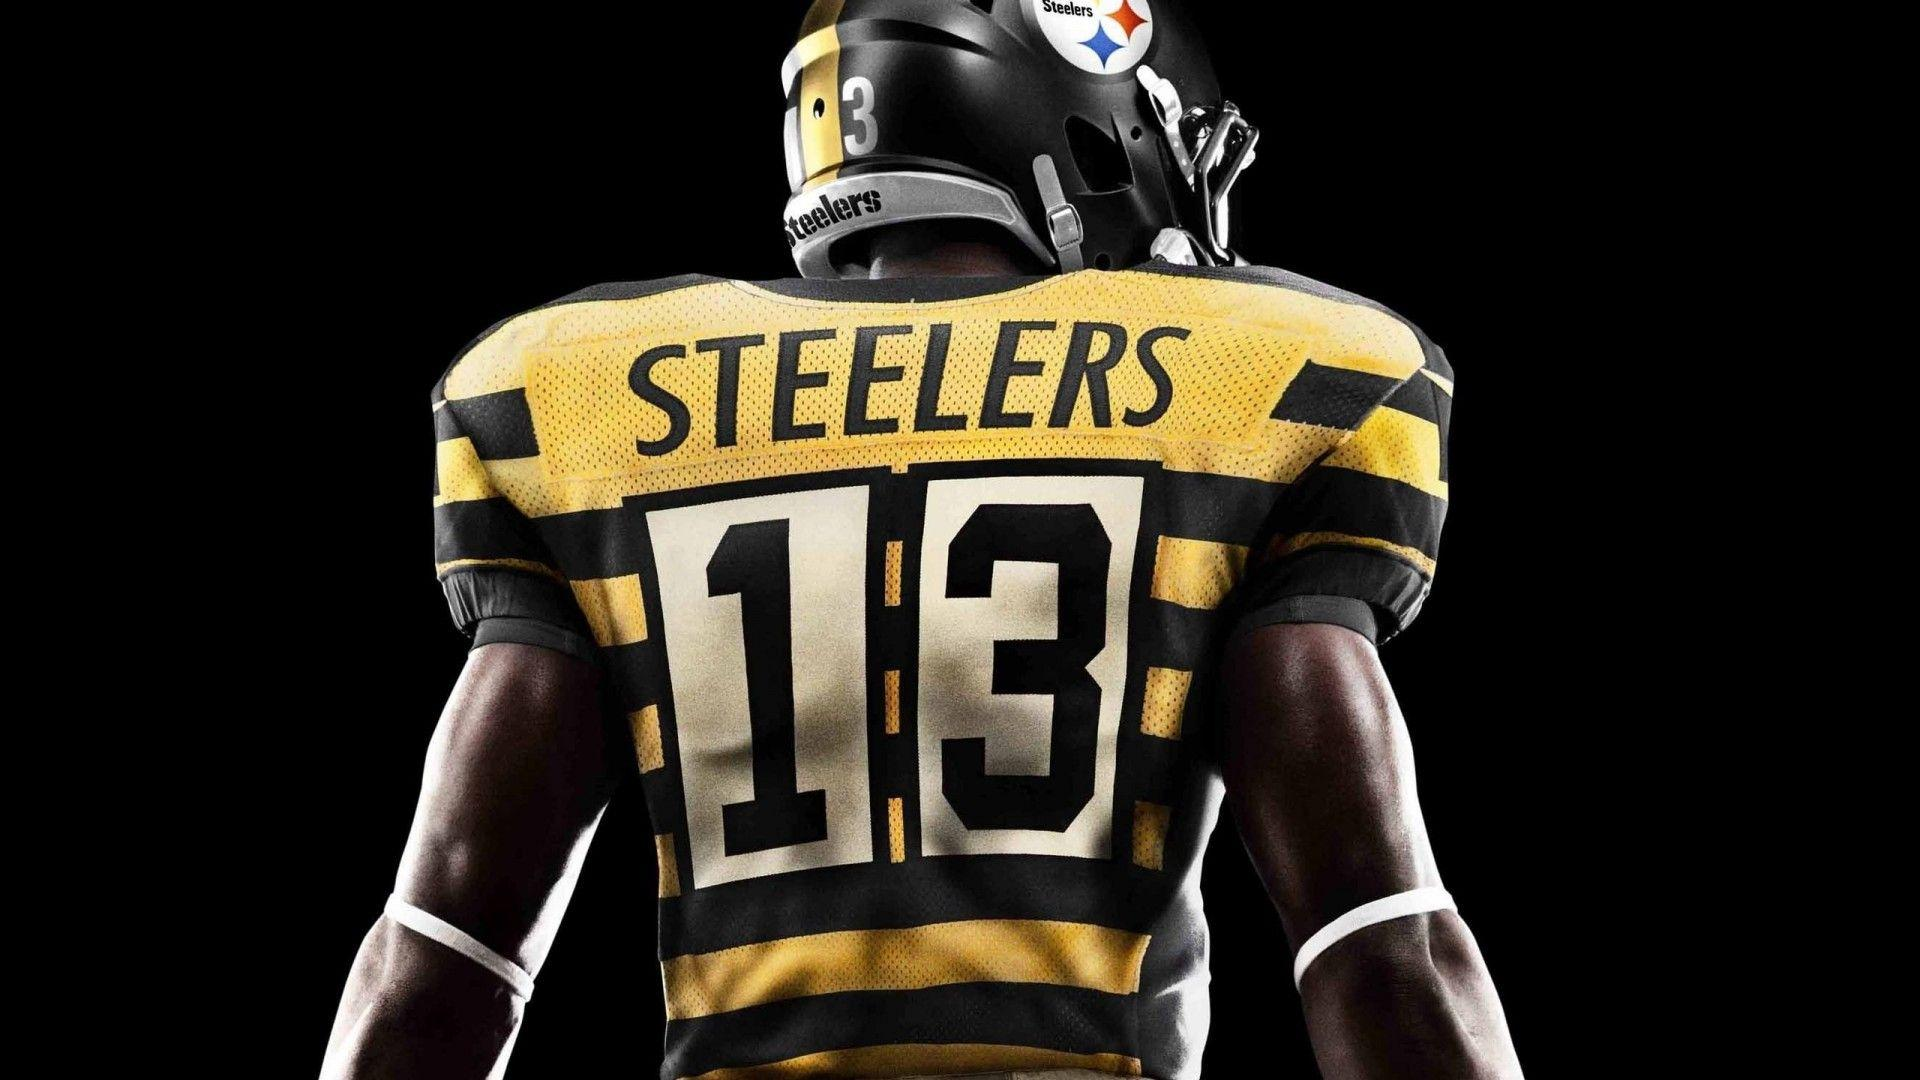 Pittsburgh Steelers Backgrounds - wallpaper.wiki